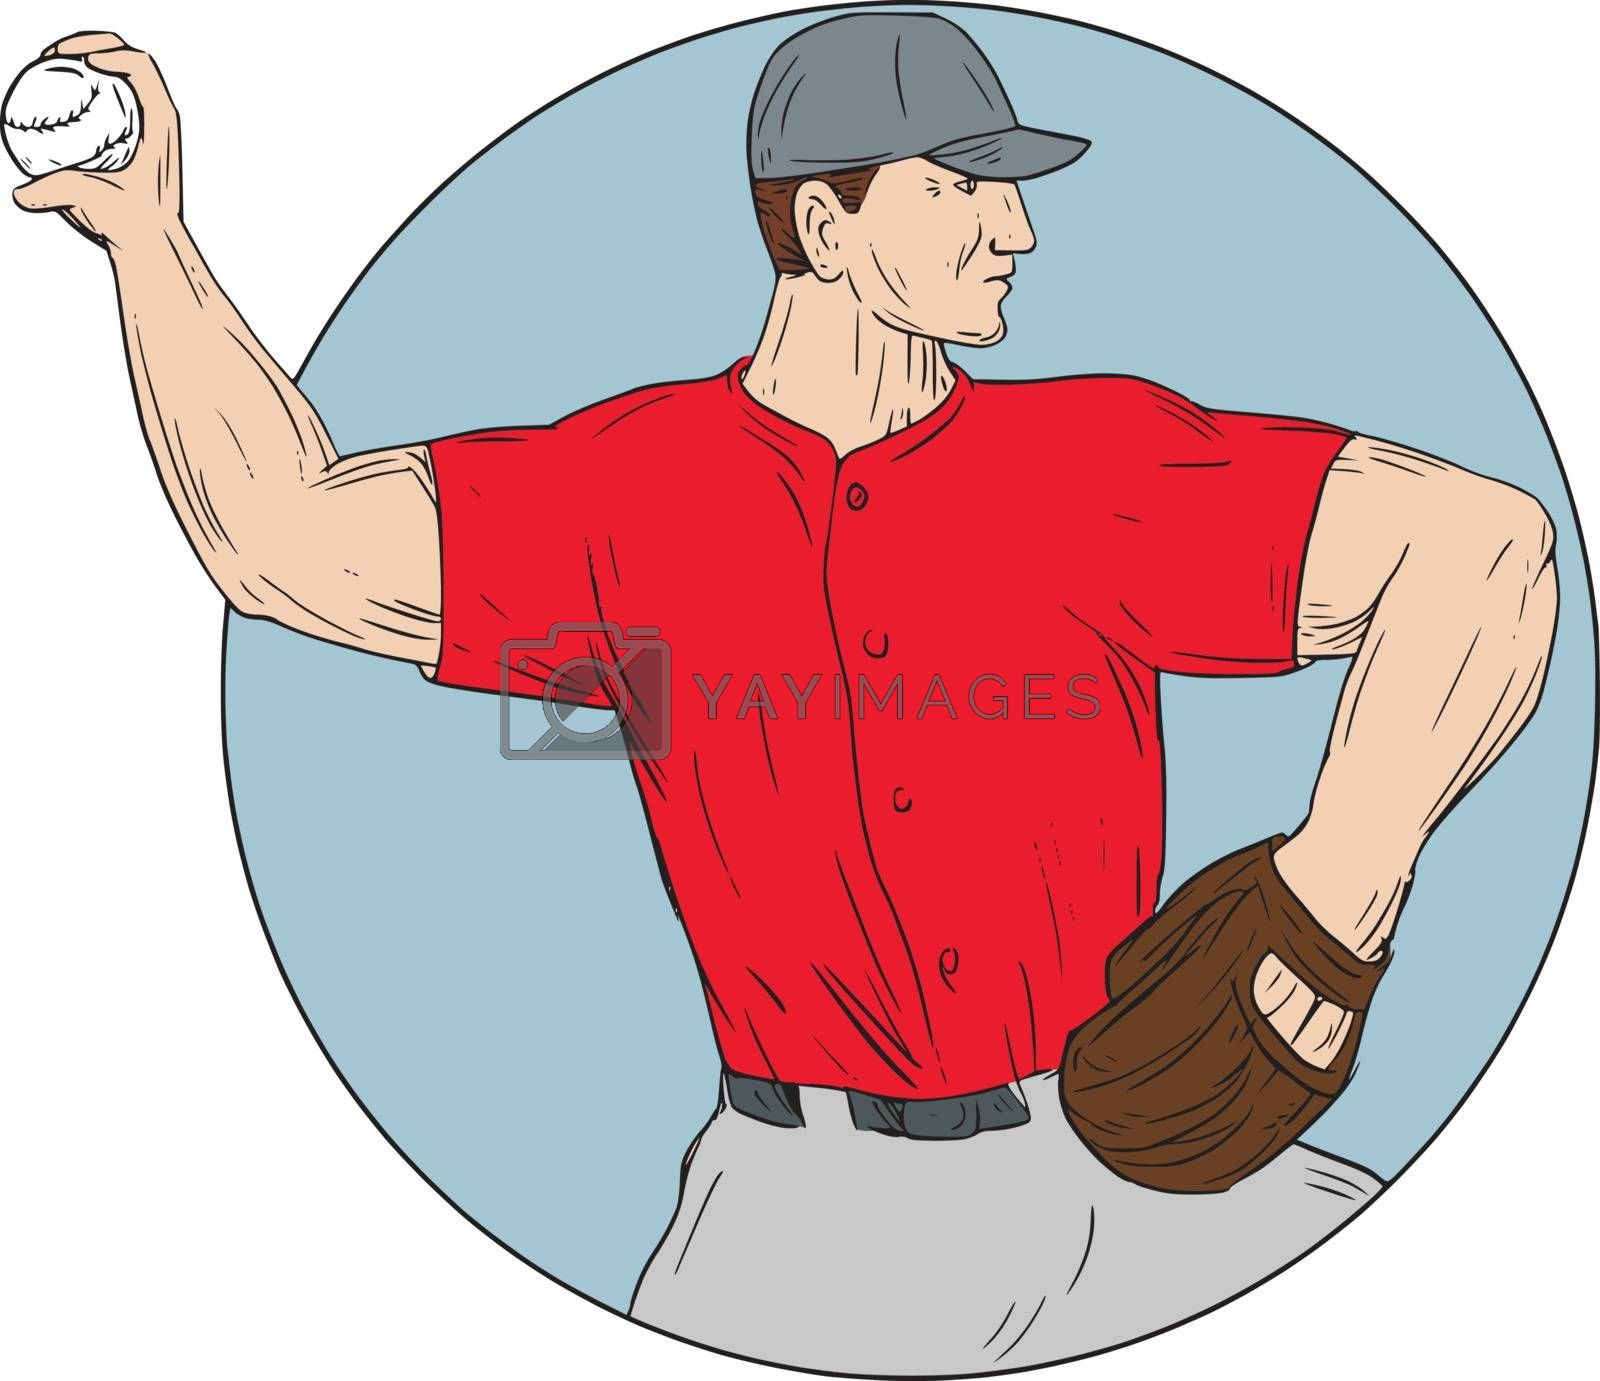 Drawing sketch style illustration of an american baseball player pitcher outfilelder throwing ball viewed from the side set inside circle on isolated background.